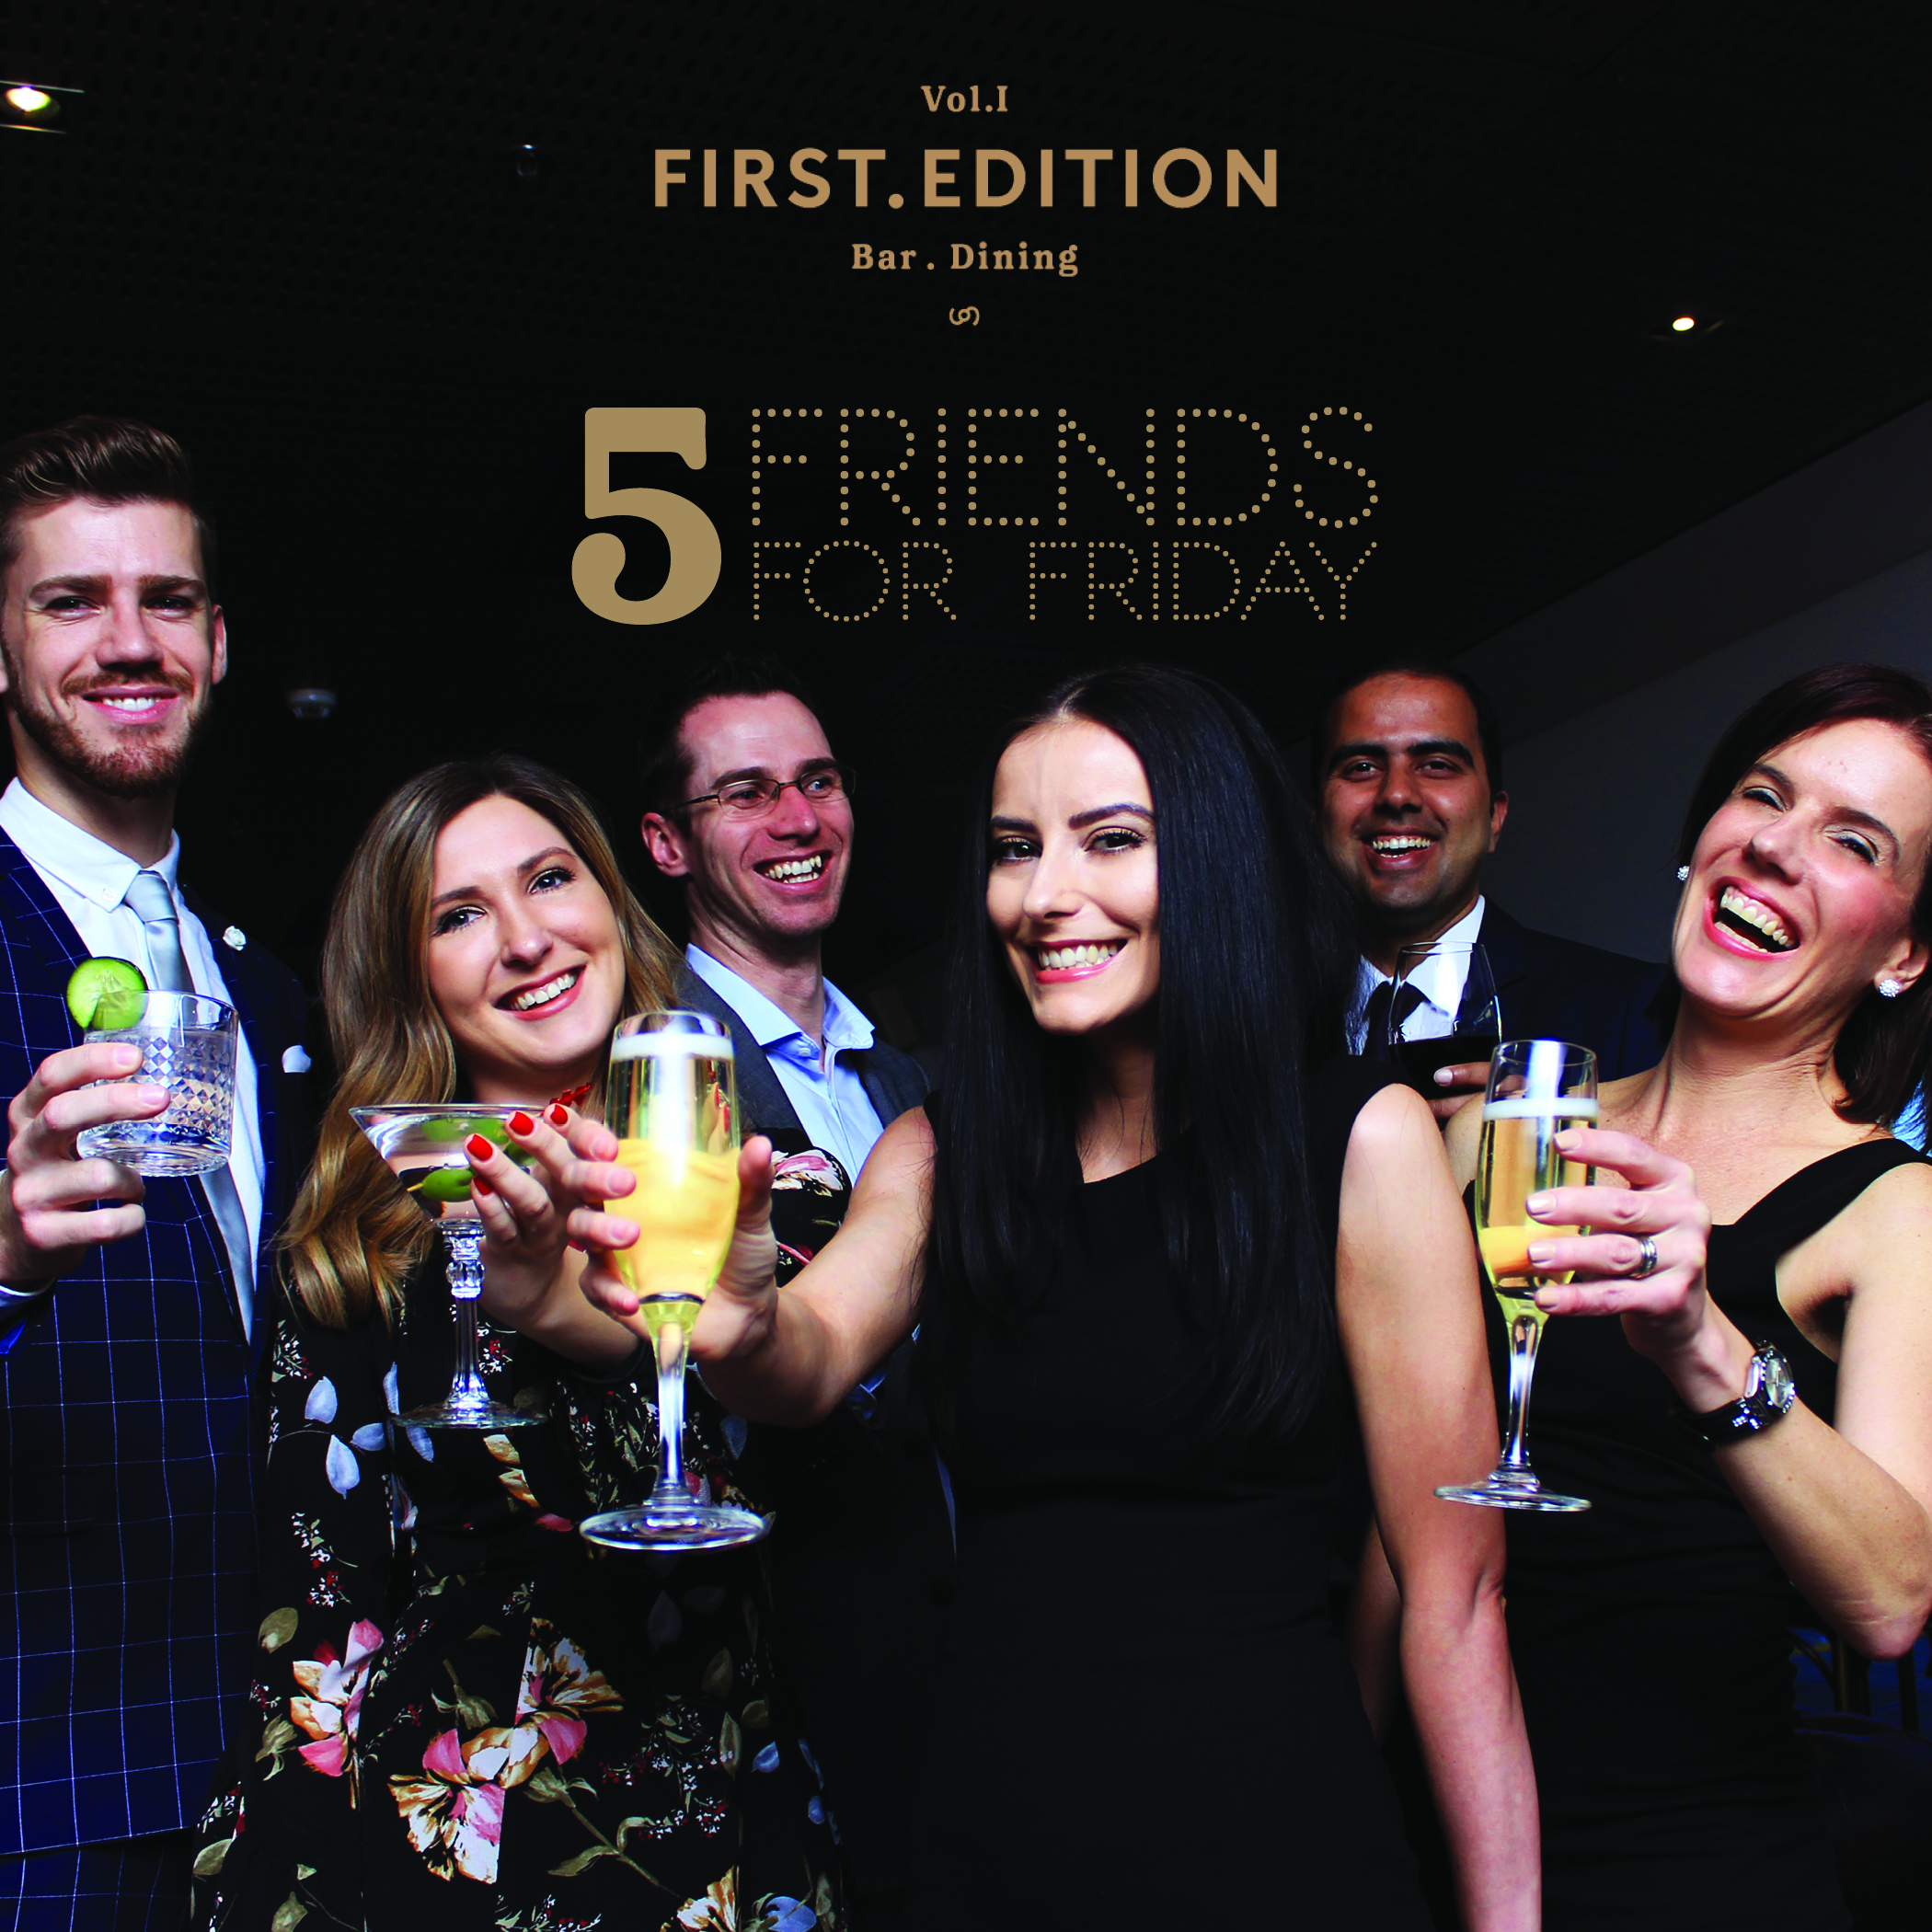 Five Friends For Friday!   Celebrate Fridays after work with our 5 Friends for Friday weekly promotion. Grab five of your friends or colleagues and book your spot at First Edition Canberra!  Receive complimentary drink vouchers and VIP reserved seating from 5pm. Signature food packages are also available.  **Bookings are essential**  To book your table call us (02) 6245 5124 or email on h2796-sl2@accor.com